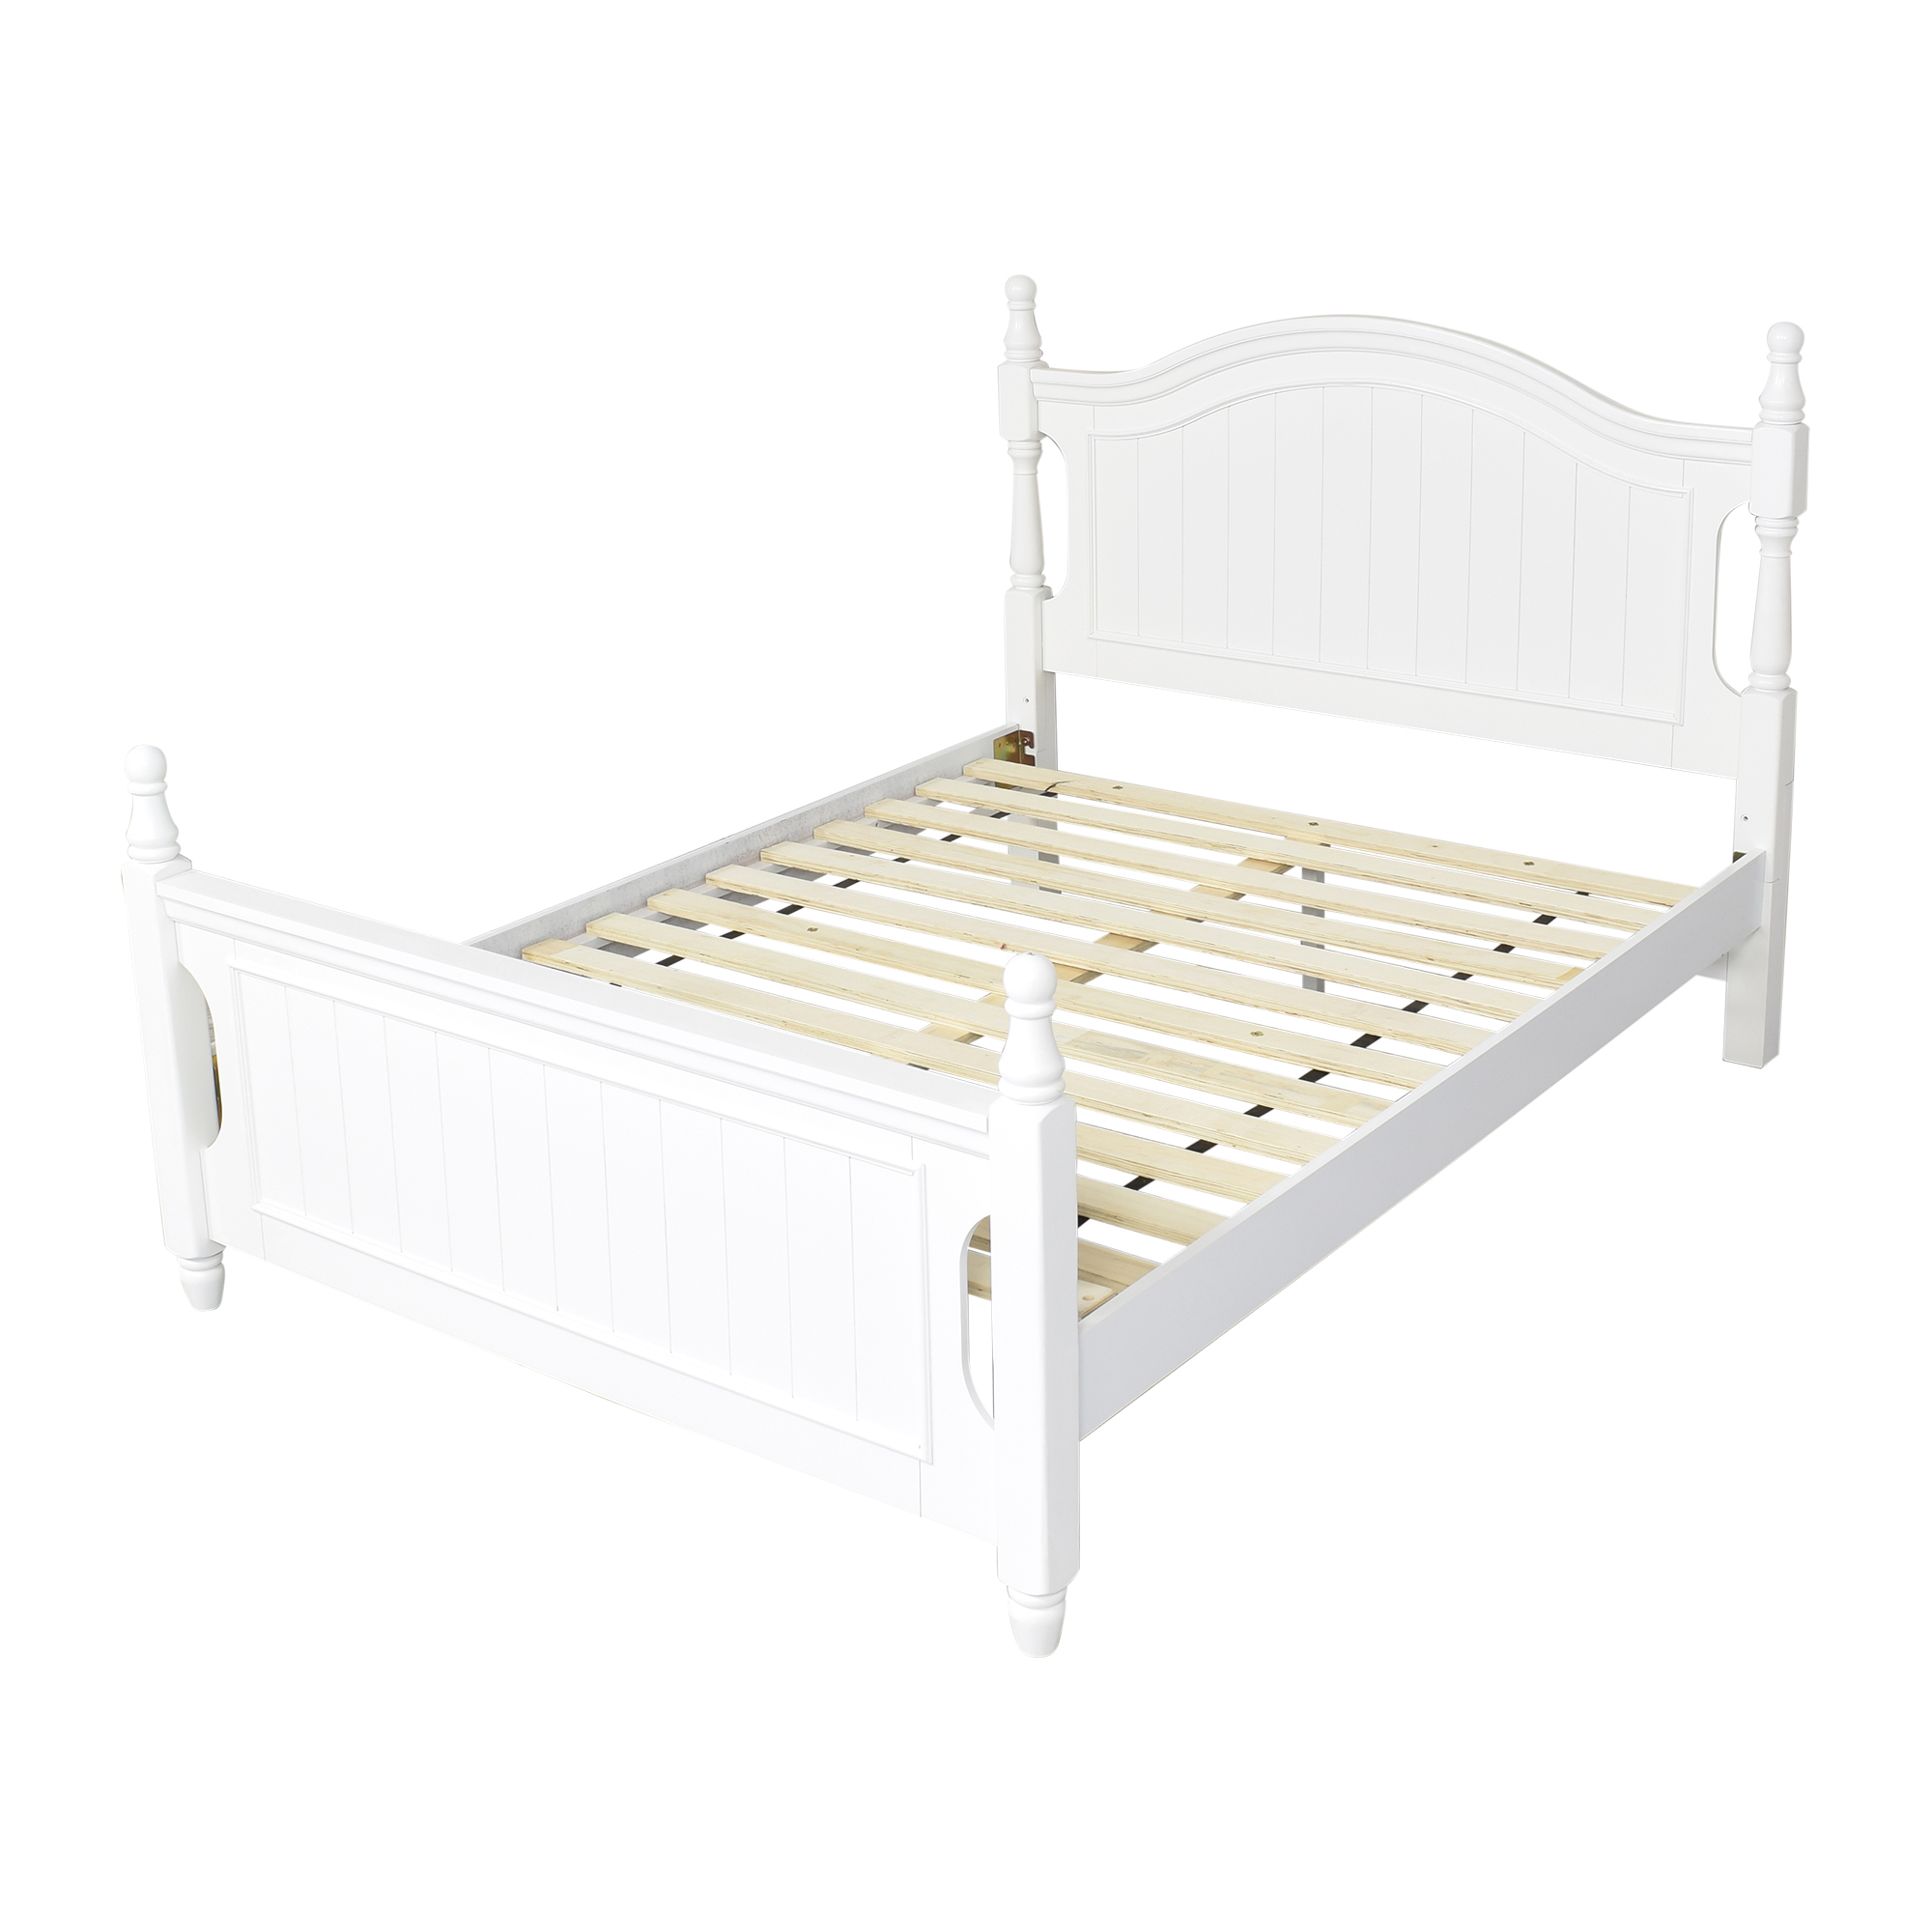 shop Raymour & Flanigan Raymour and Flanigan Willow Point Post Full Bed online